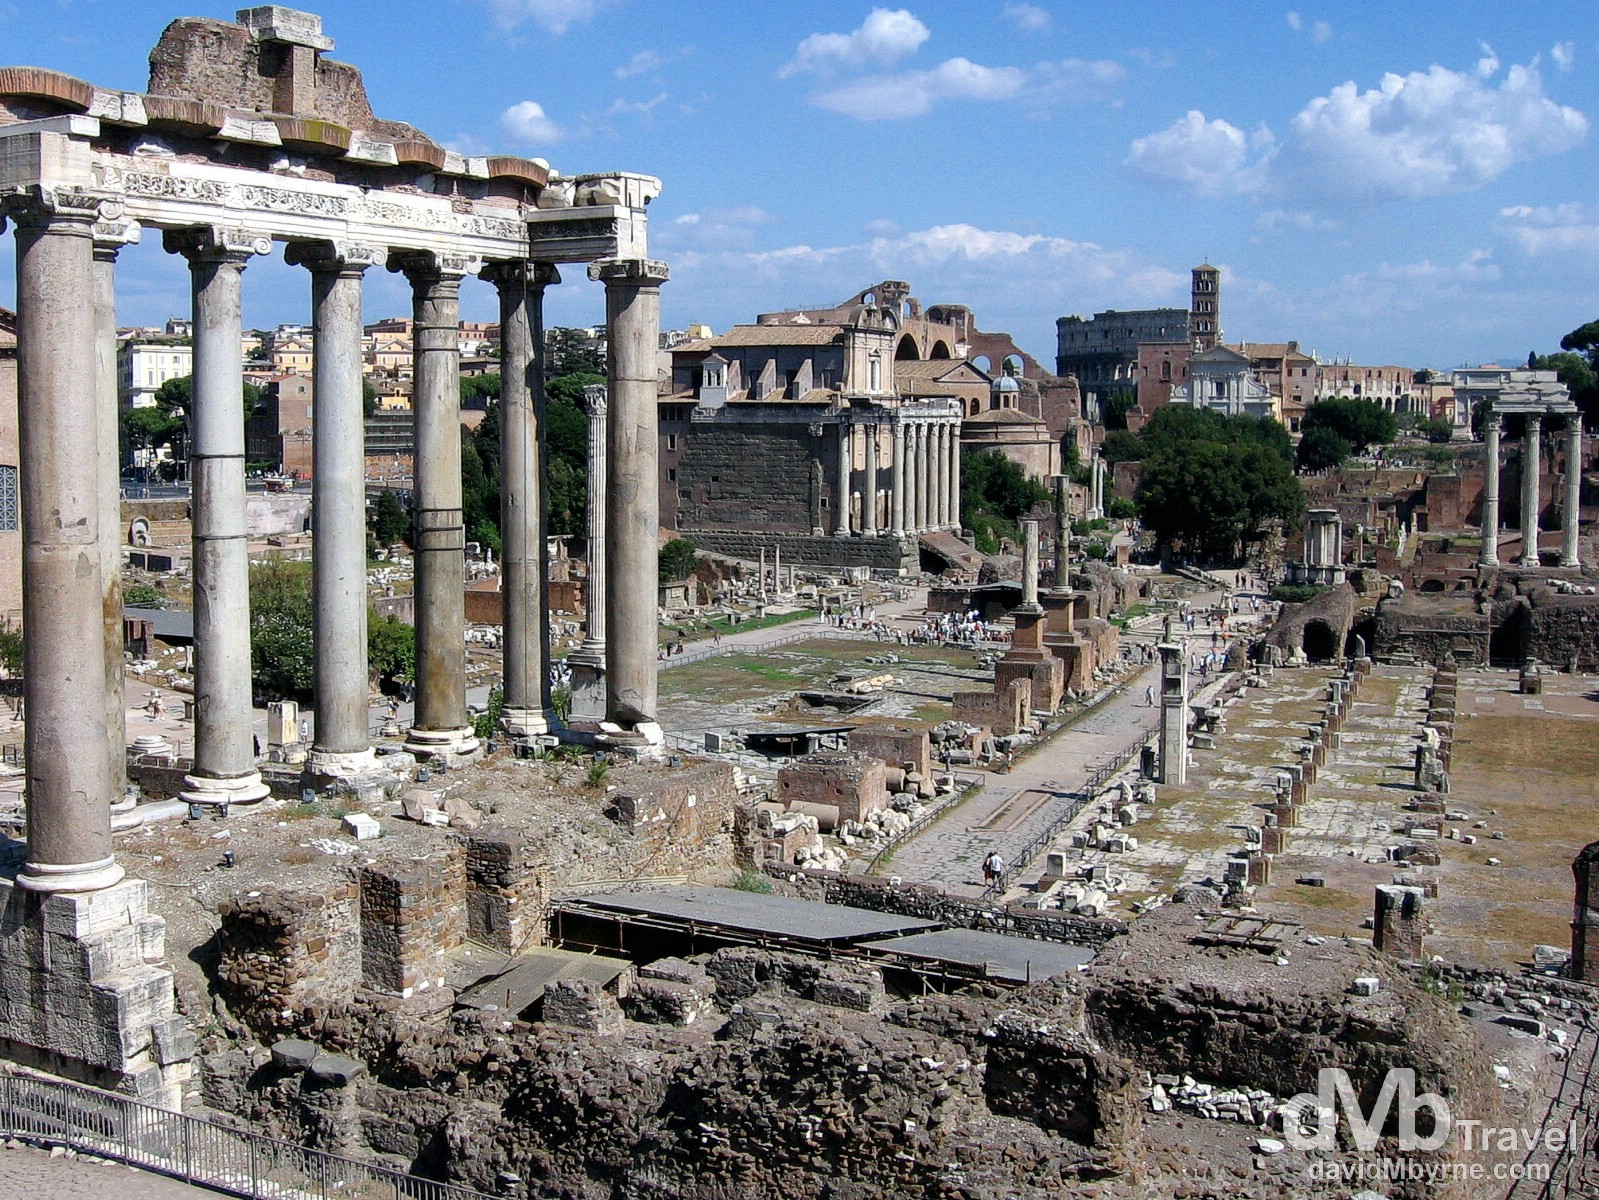 The ancient Roman Forum in Rome, Italy. September 2nd, 2007.